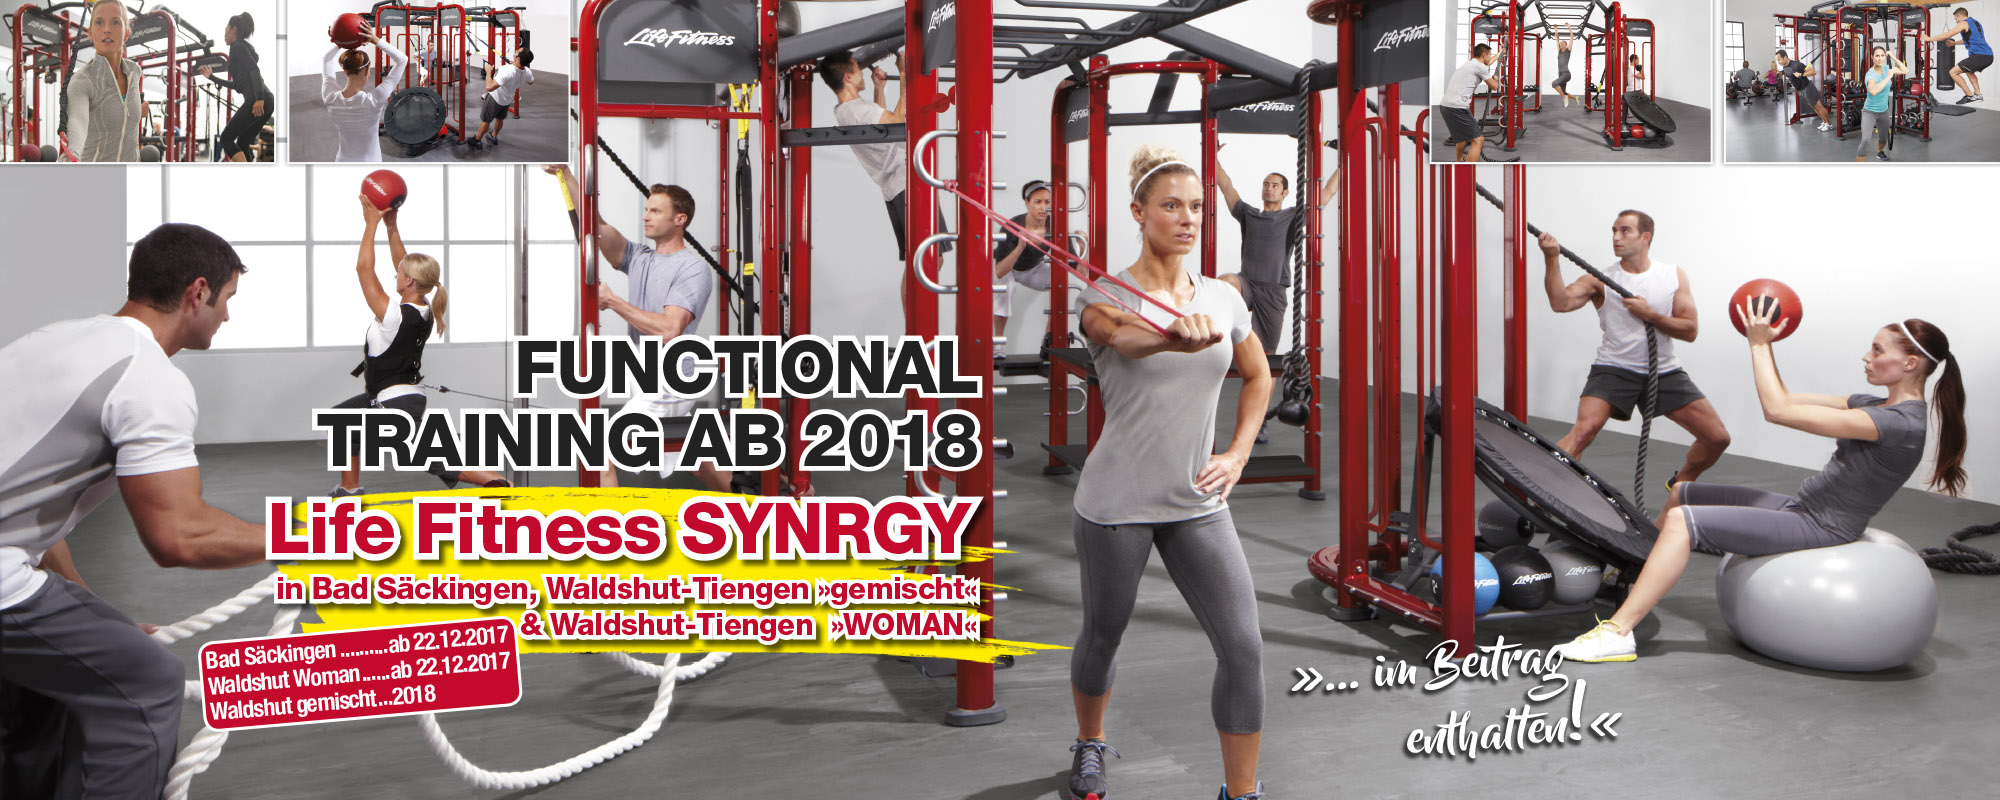 Synrgy360- The Complete Workout Solution - Pro Fitness Discounter